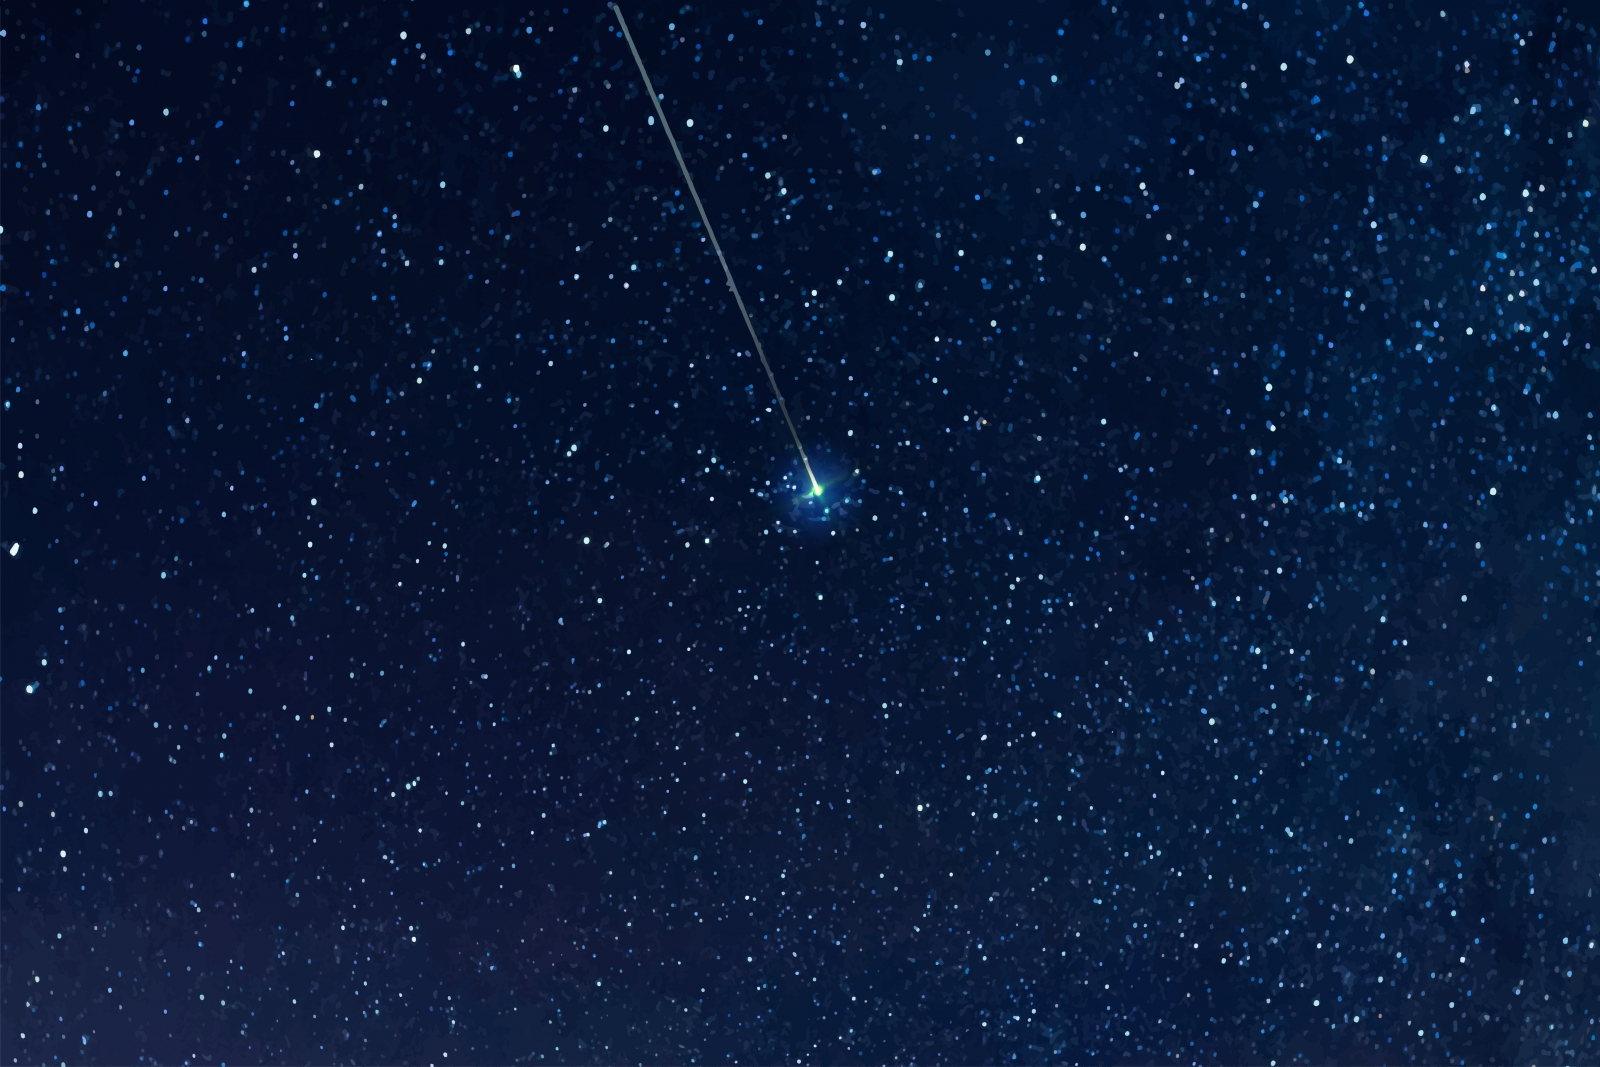 A starry night sky with a single meteor or shooting star streaking across it. Photo by 123levit-Fotolia.